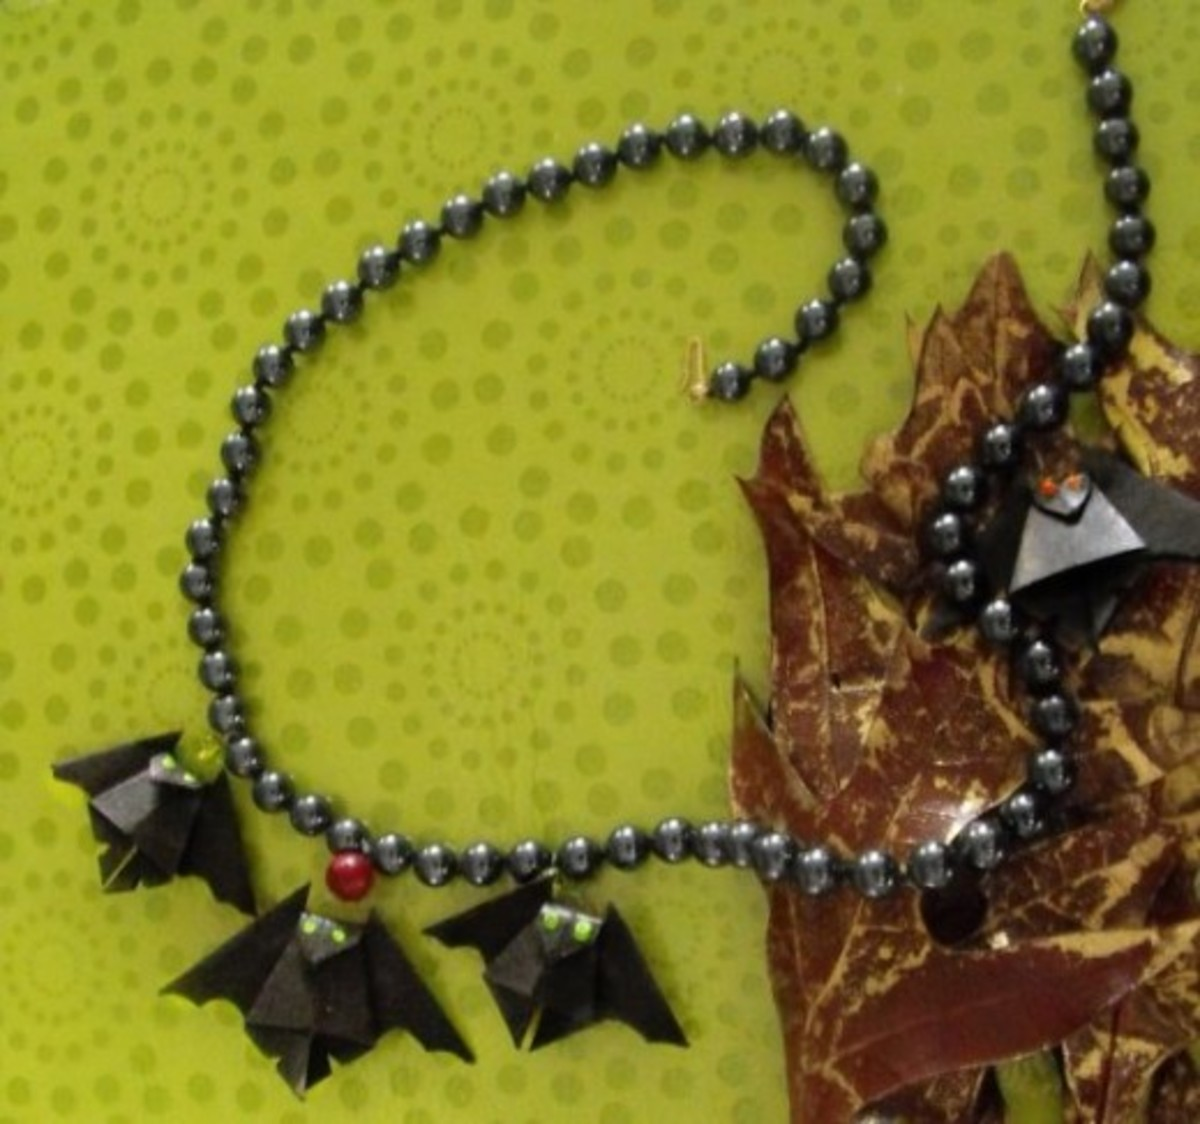 I made little bats and attached them to a necklace for wearing during the Halloween season.